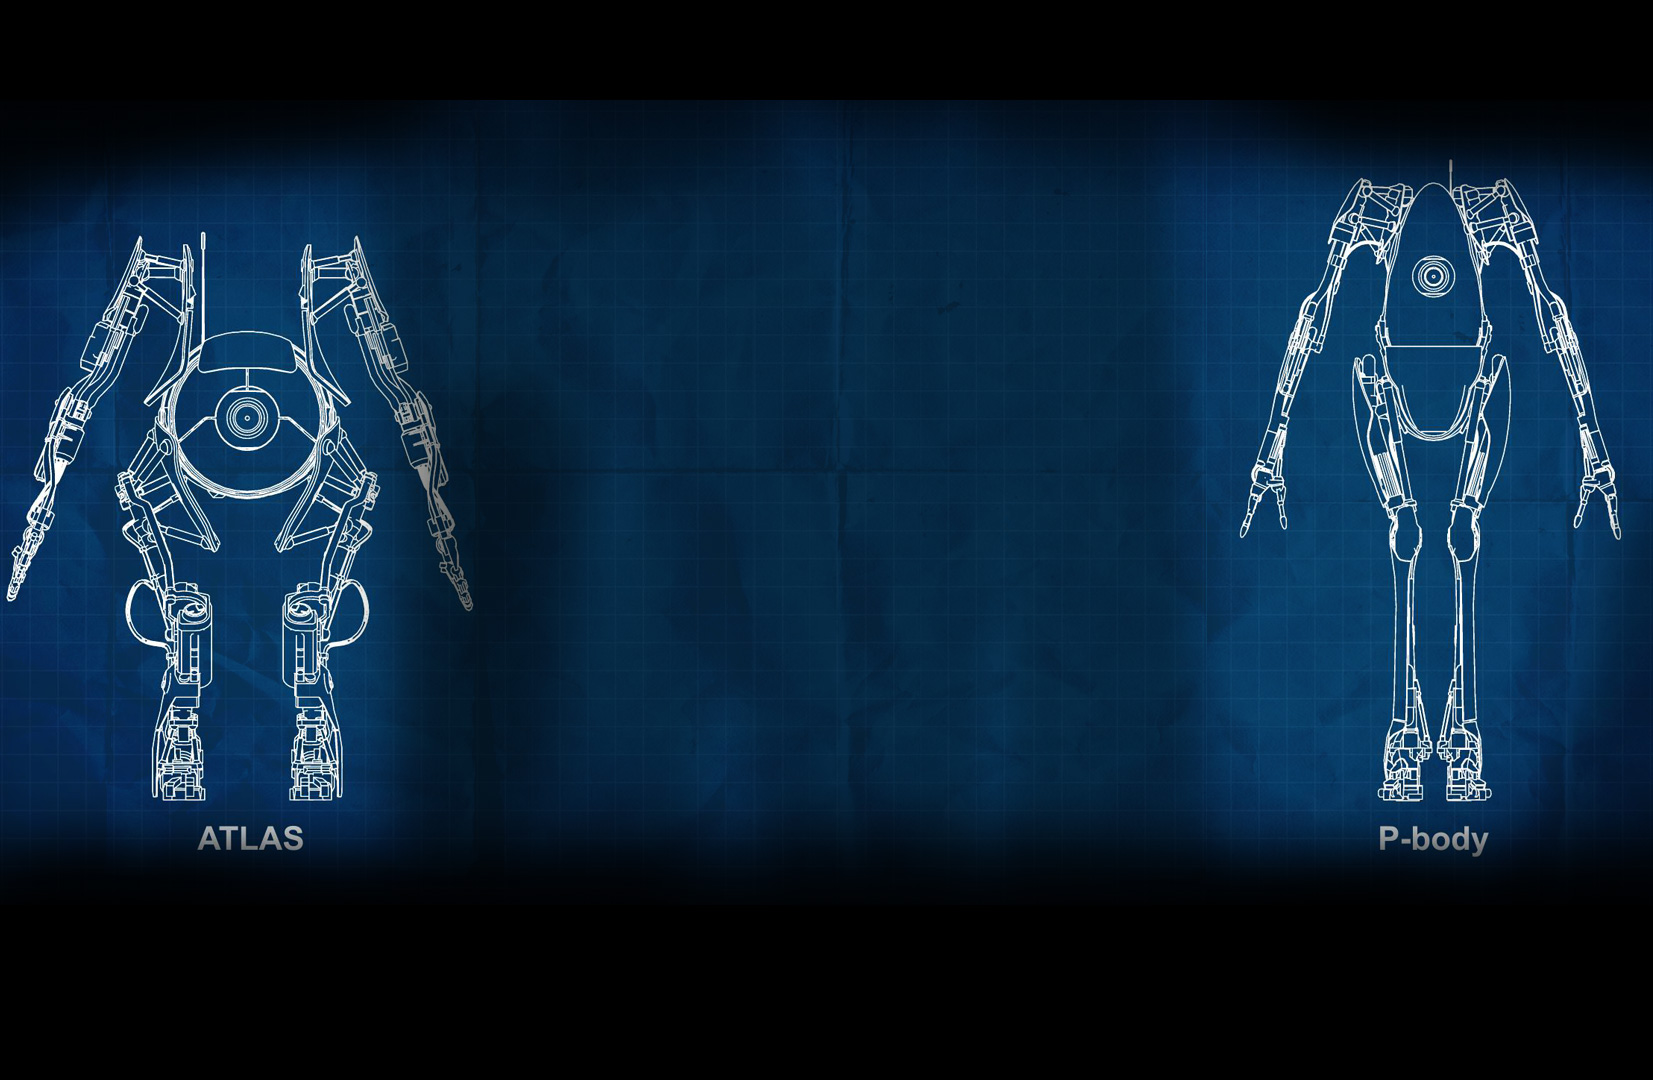 Steam community market listings for 620 bot blueprint bot blueprint steam steam portal 2 rare profile background view full size malvernweather Images